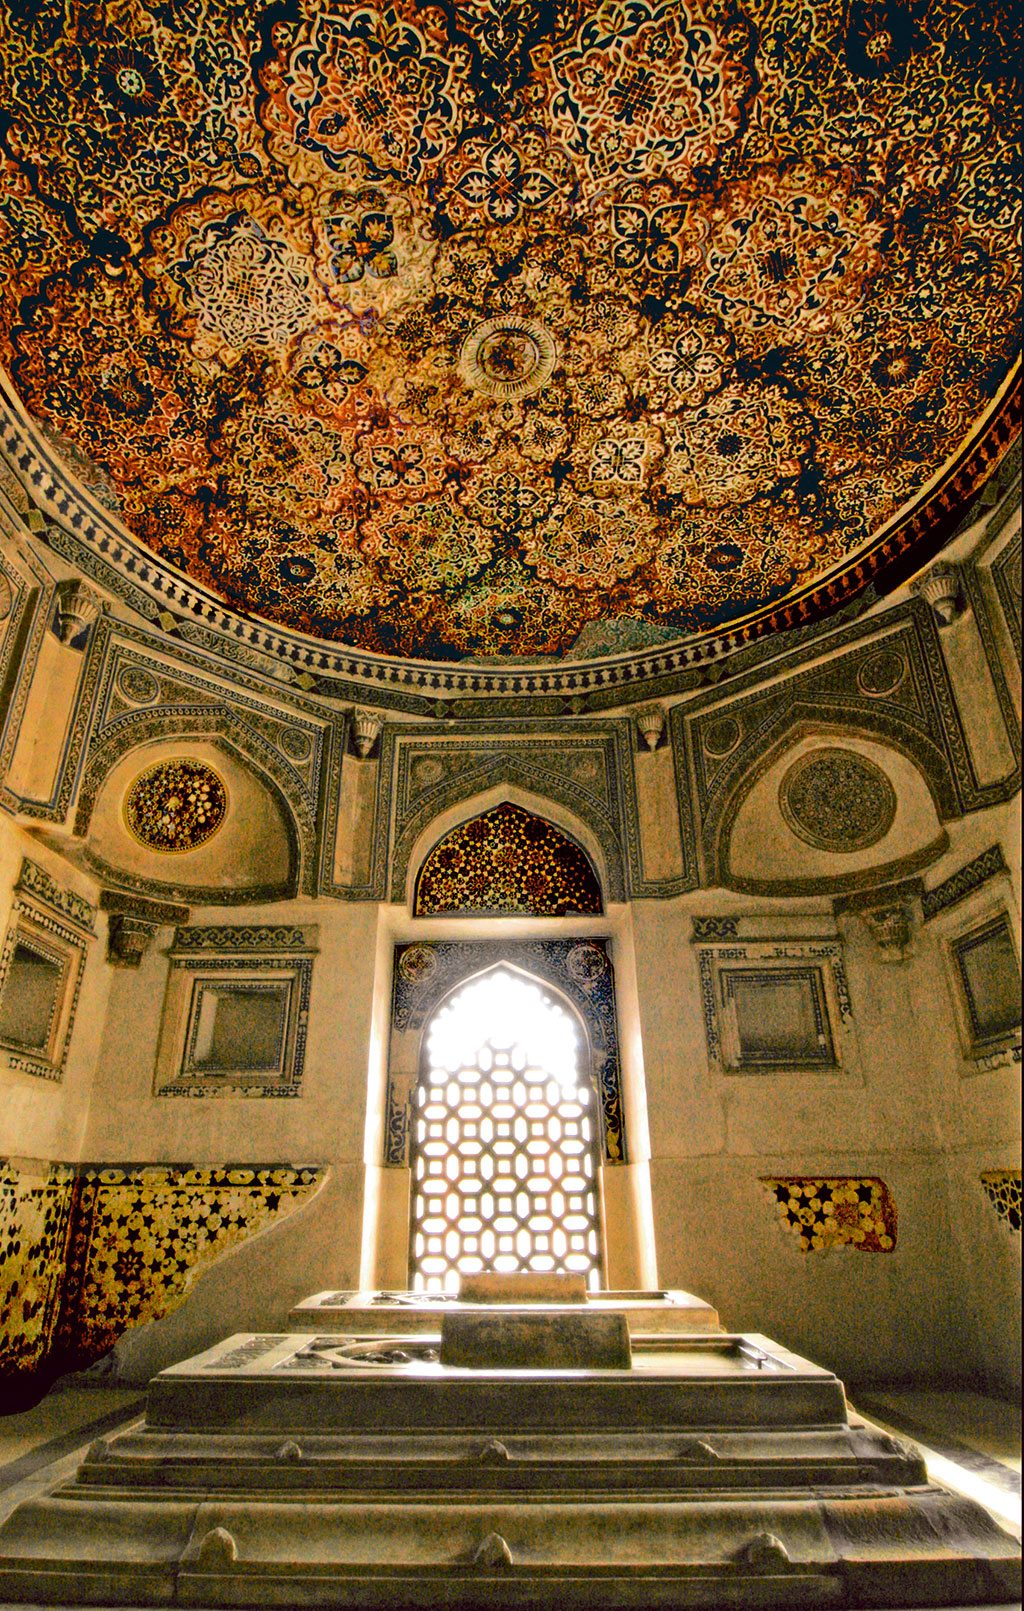 The tomb and mosque of Jamali-Kamali is one of the best examples of Indo-Islamic architecture in the Meharuli Archaeological Park. It incorporates a multitude of styles including Islamic inscriptions, Rajasthani jharokhas (balconies) as well as a Star of David. Photo: Poonamparihar.com/Moment Open/Getty Images